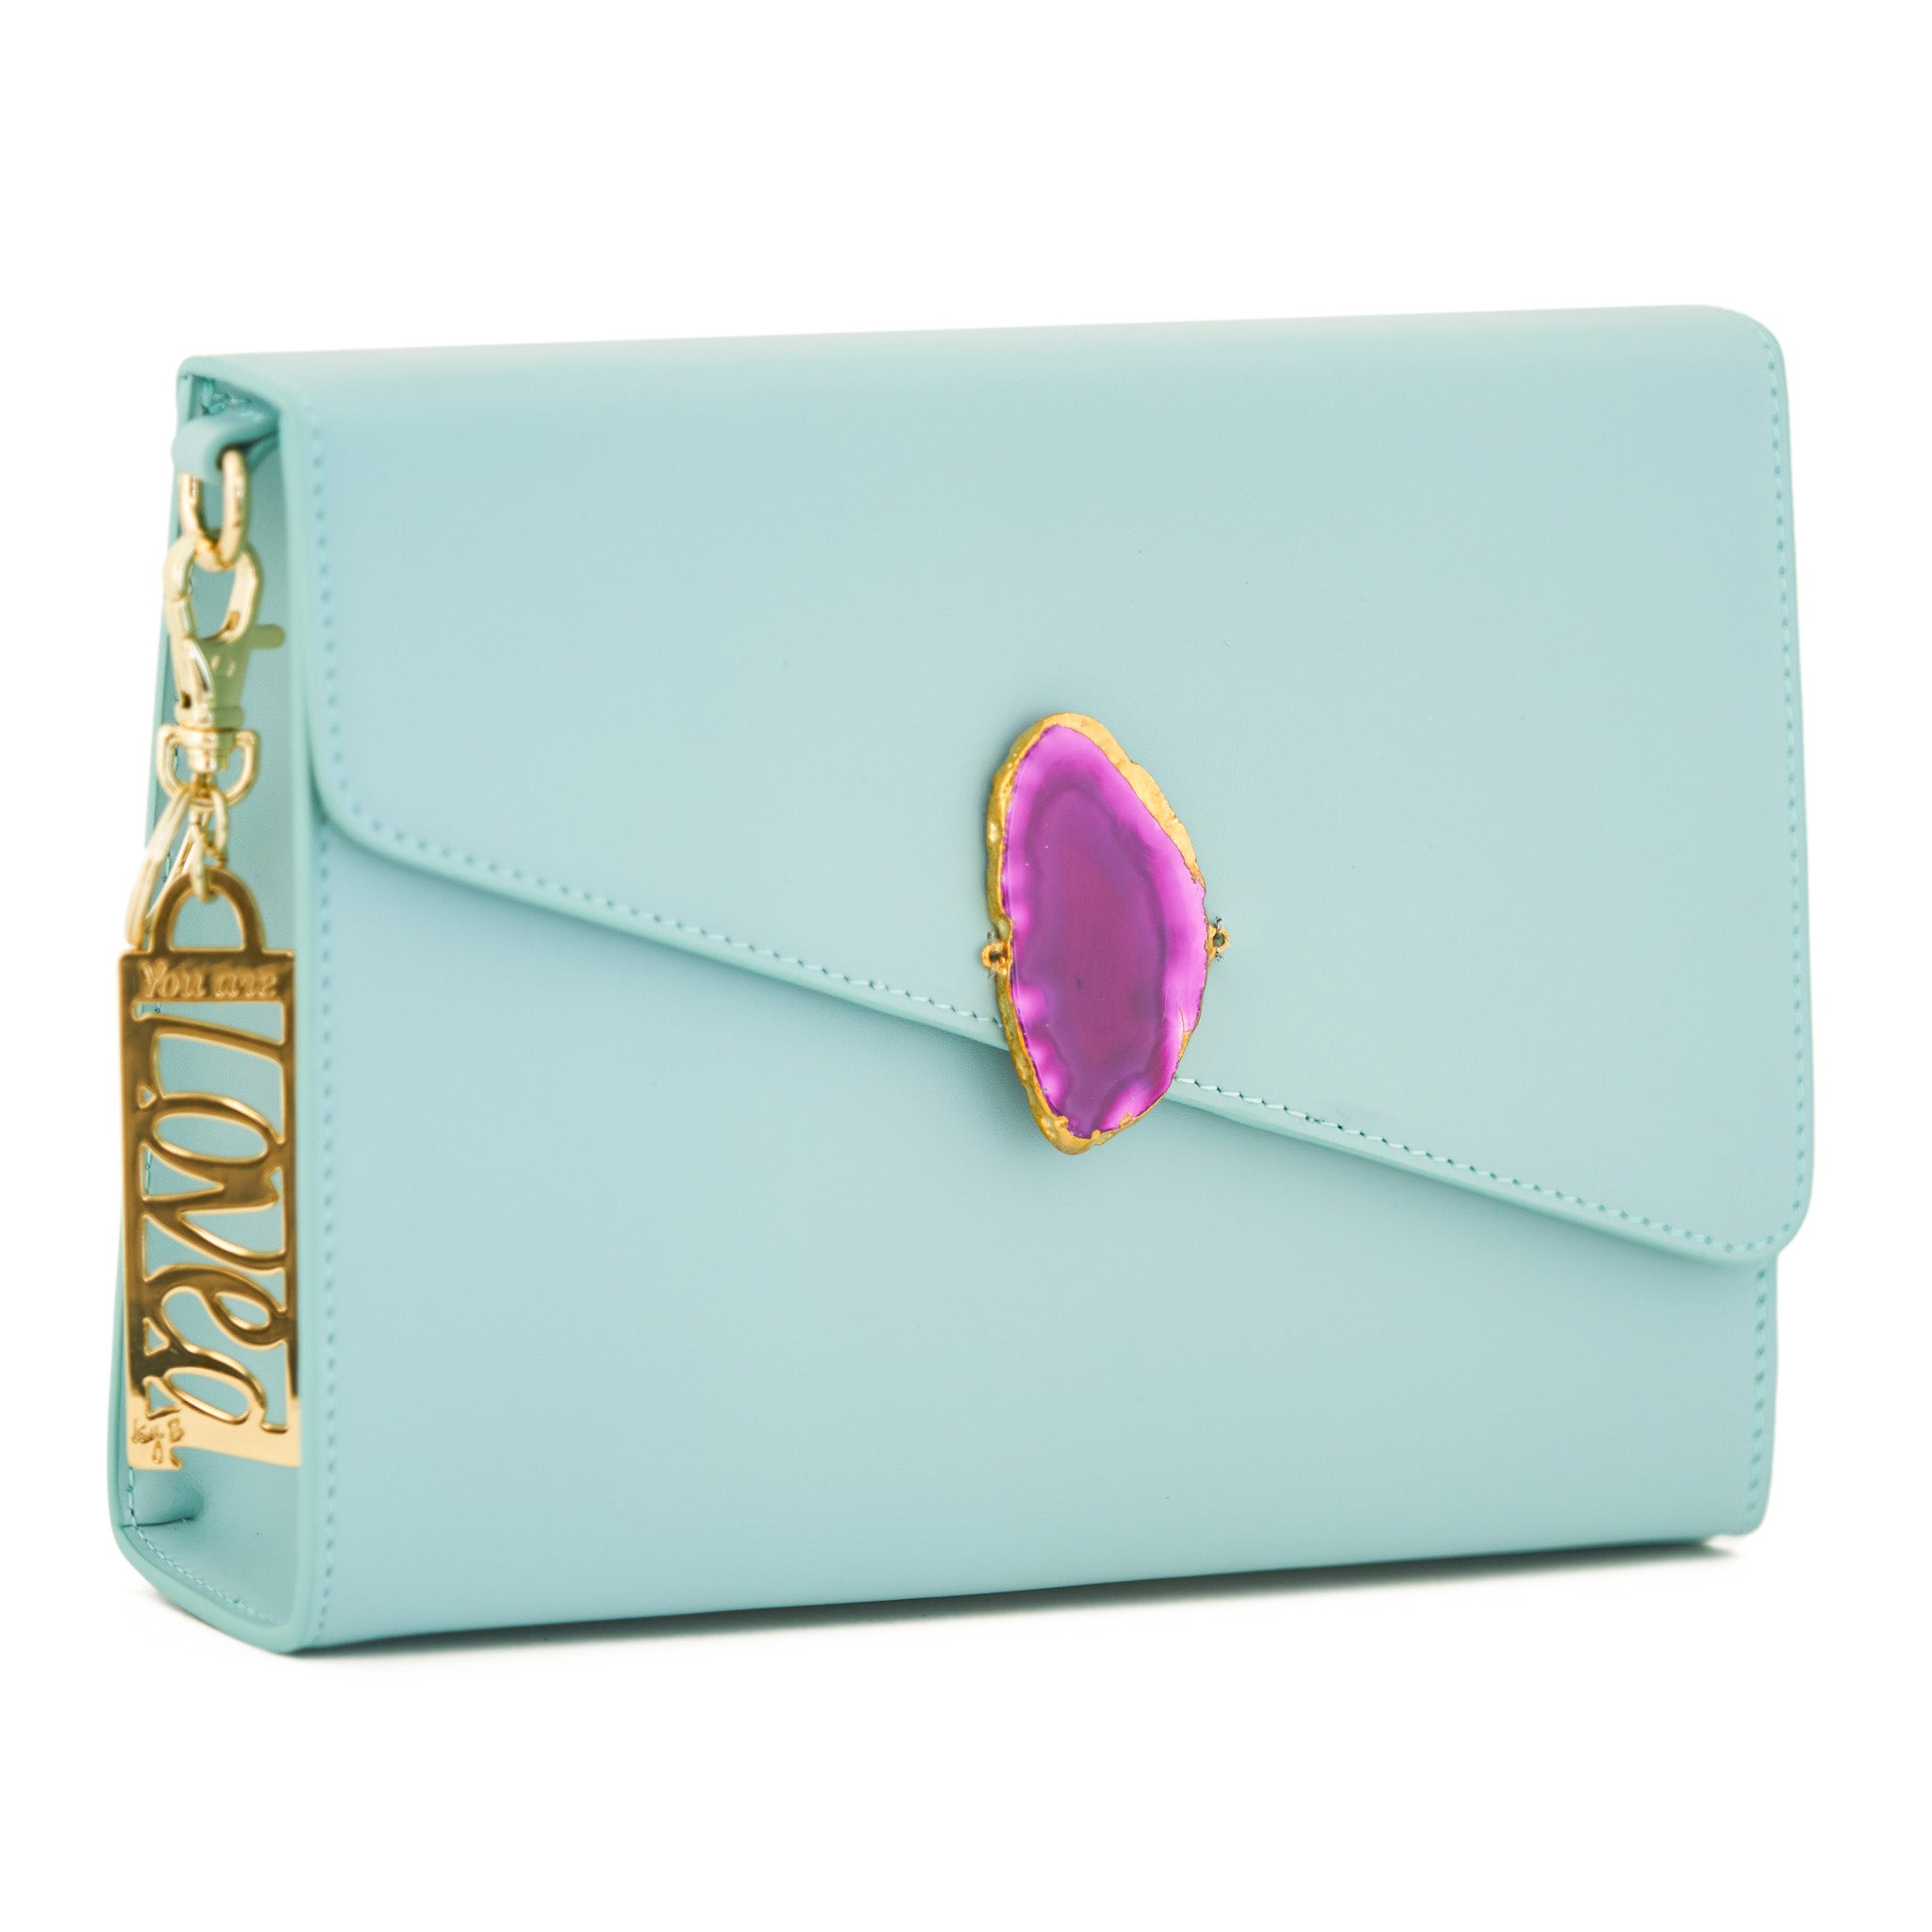 Loved Bag - Aquamarine Leather with Pink Agate